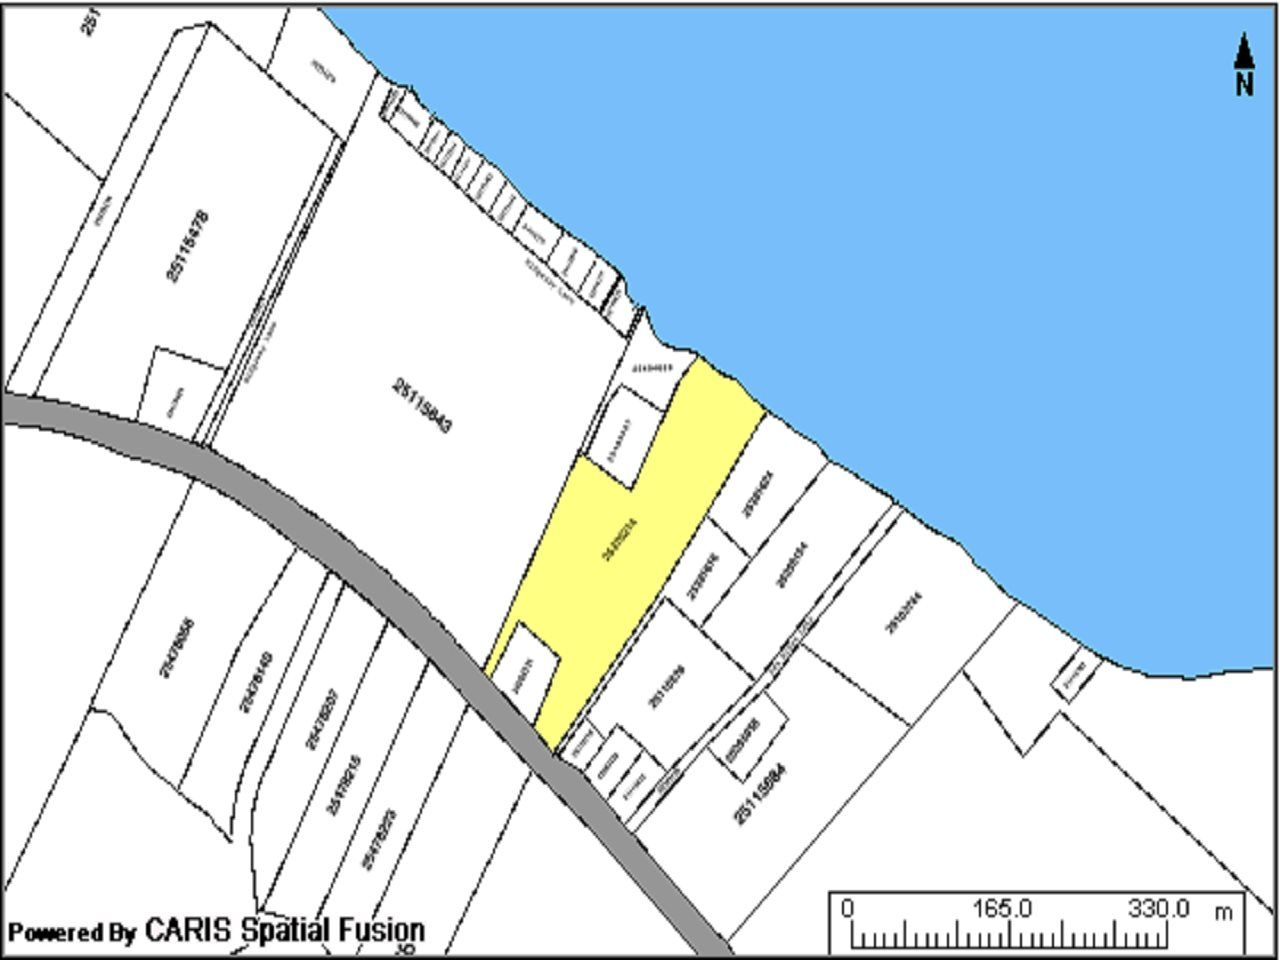 Main Photo: 96-1A Highway 366 in Northport: 103-Malagash, Wentworth Vacant Land for sale (Northern Region)  : MLS®# 202005000